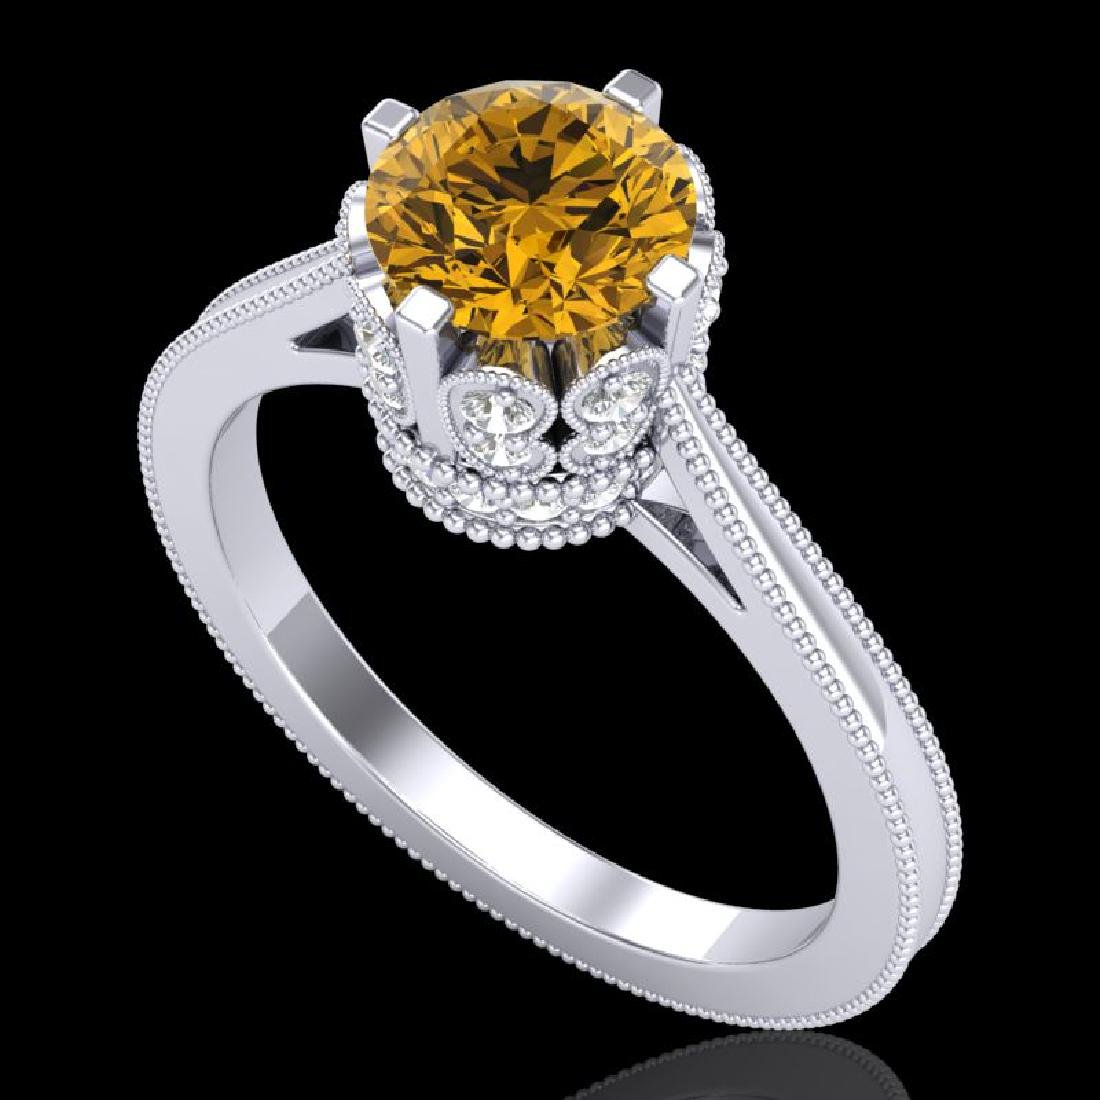 1.5 CTW Intense Fancy Yellow Diamond Engagement Art